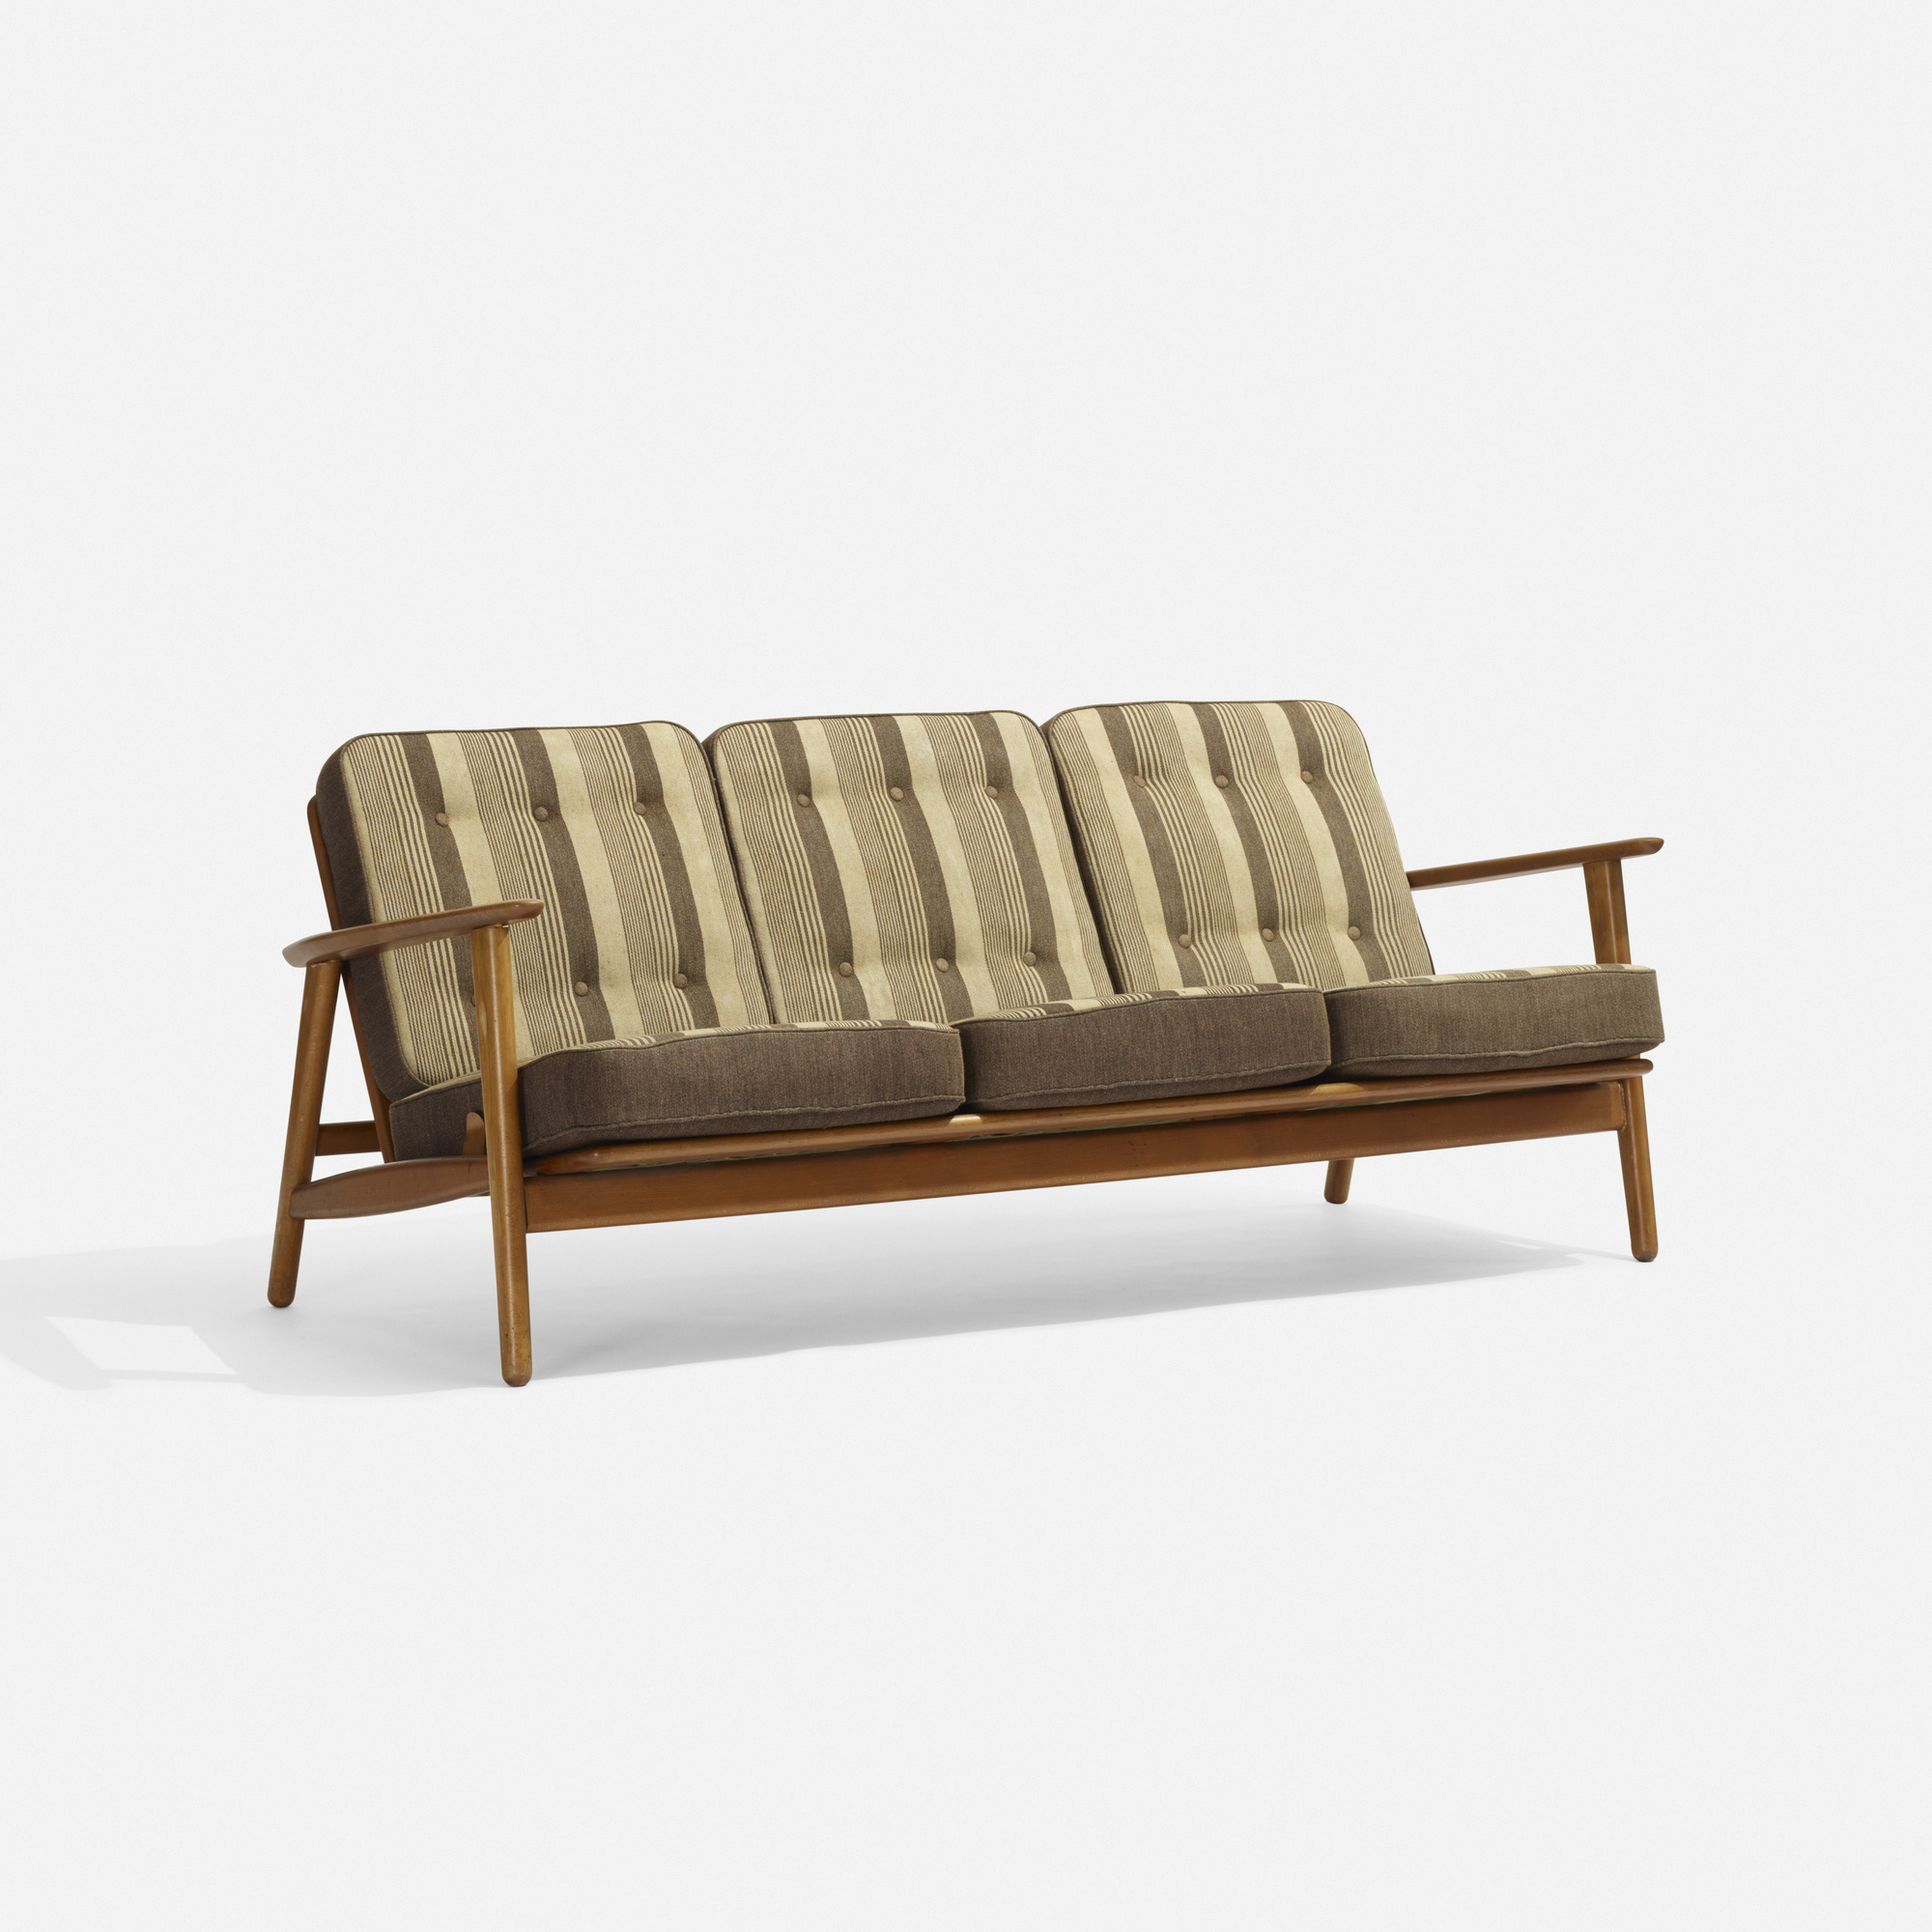 Attractive 239: In The Manner Of Hans J. Wegner / Sofa (1 Of 3